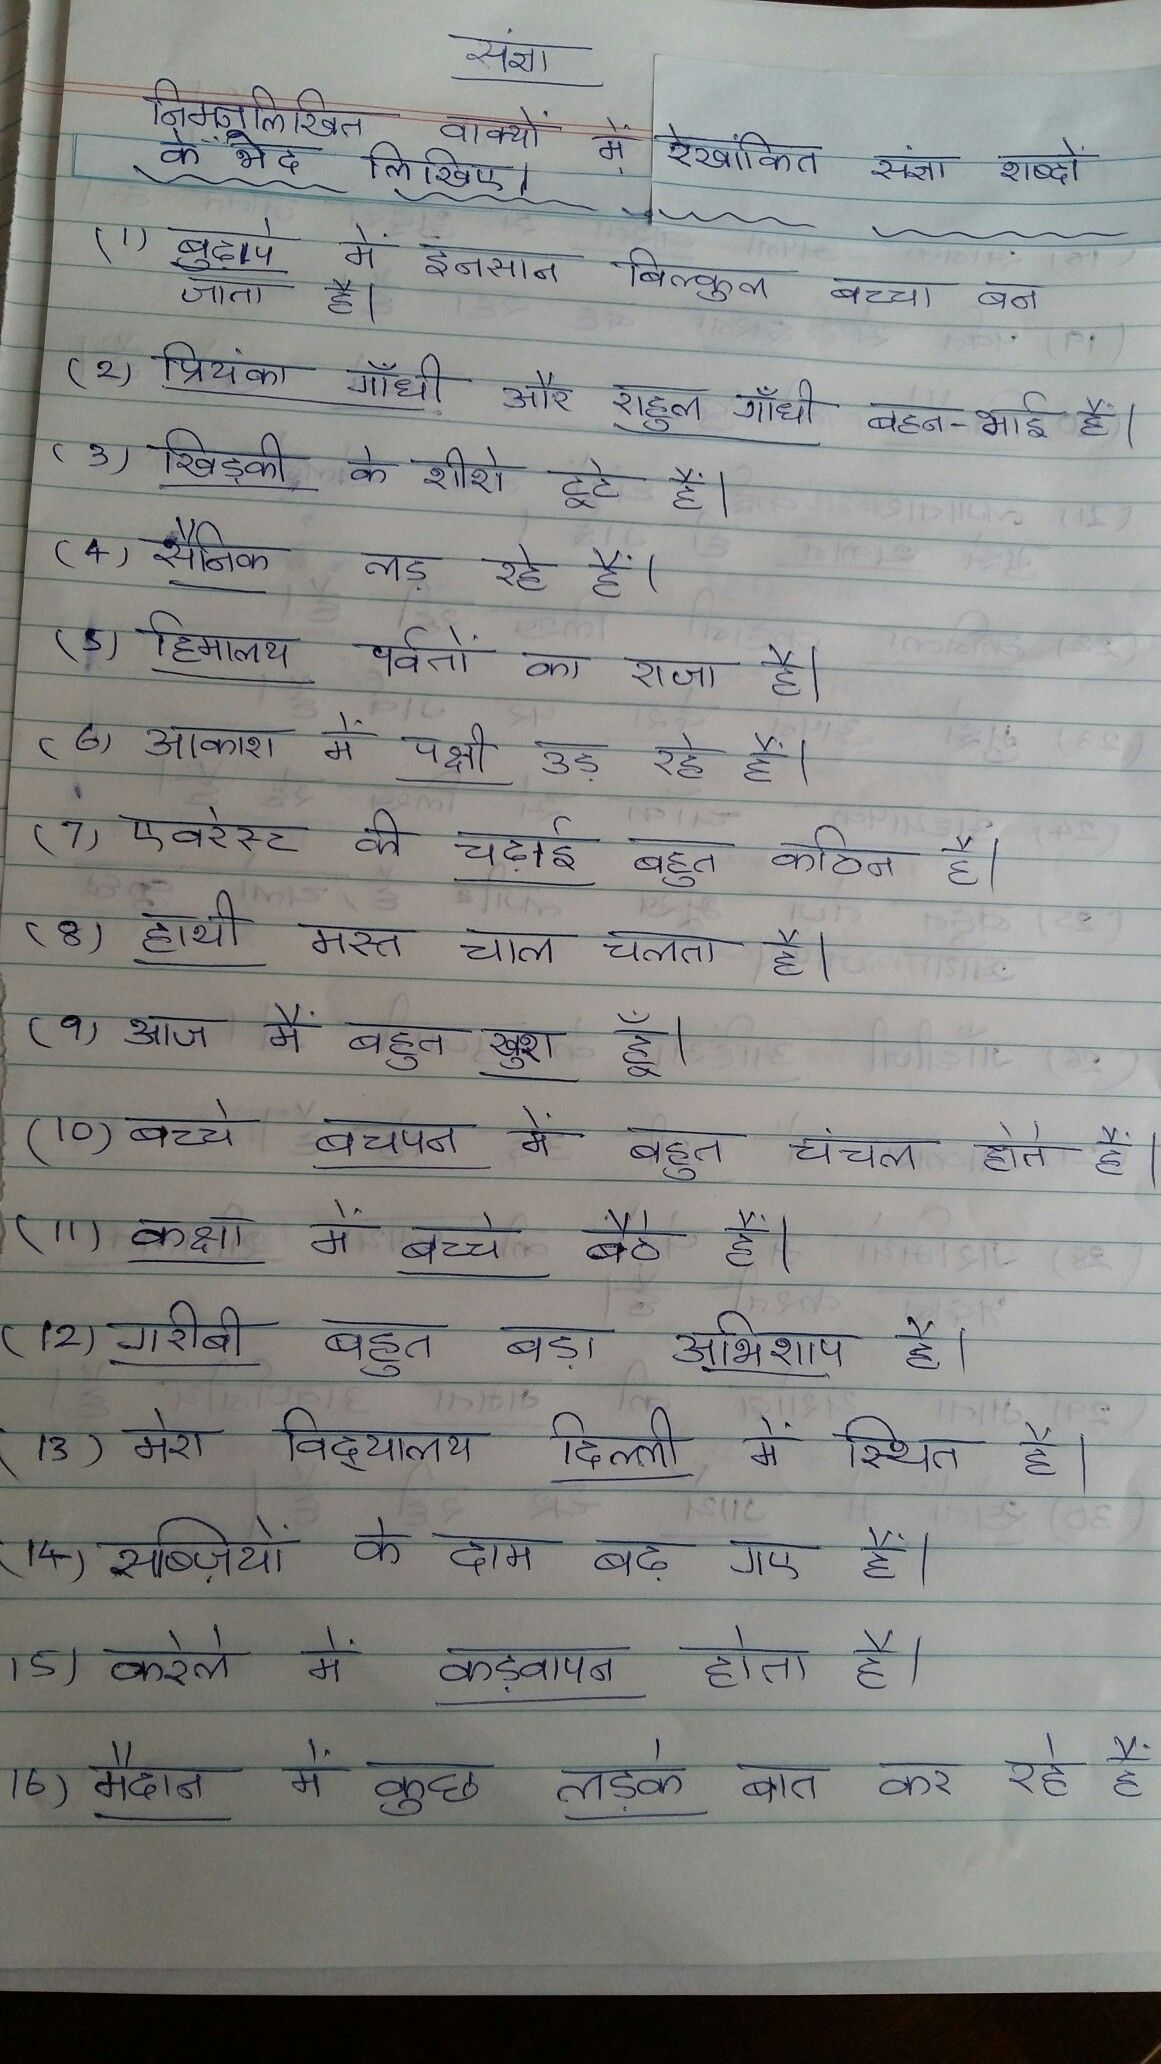 6 Hindi Grammar Worksheets For Class 1 In